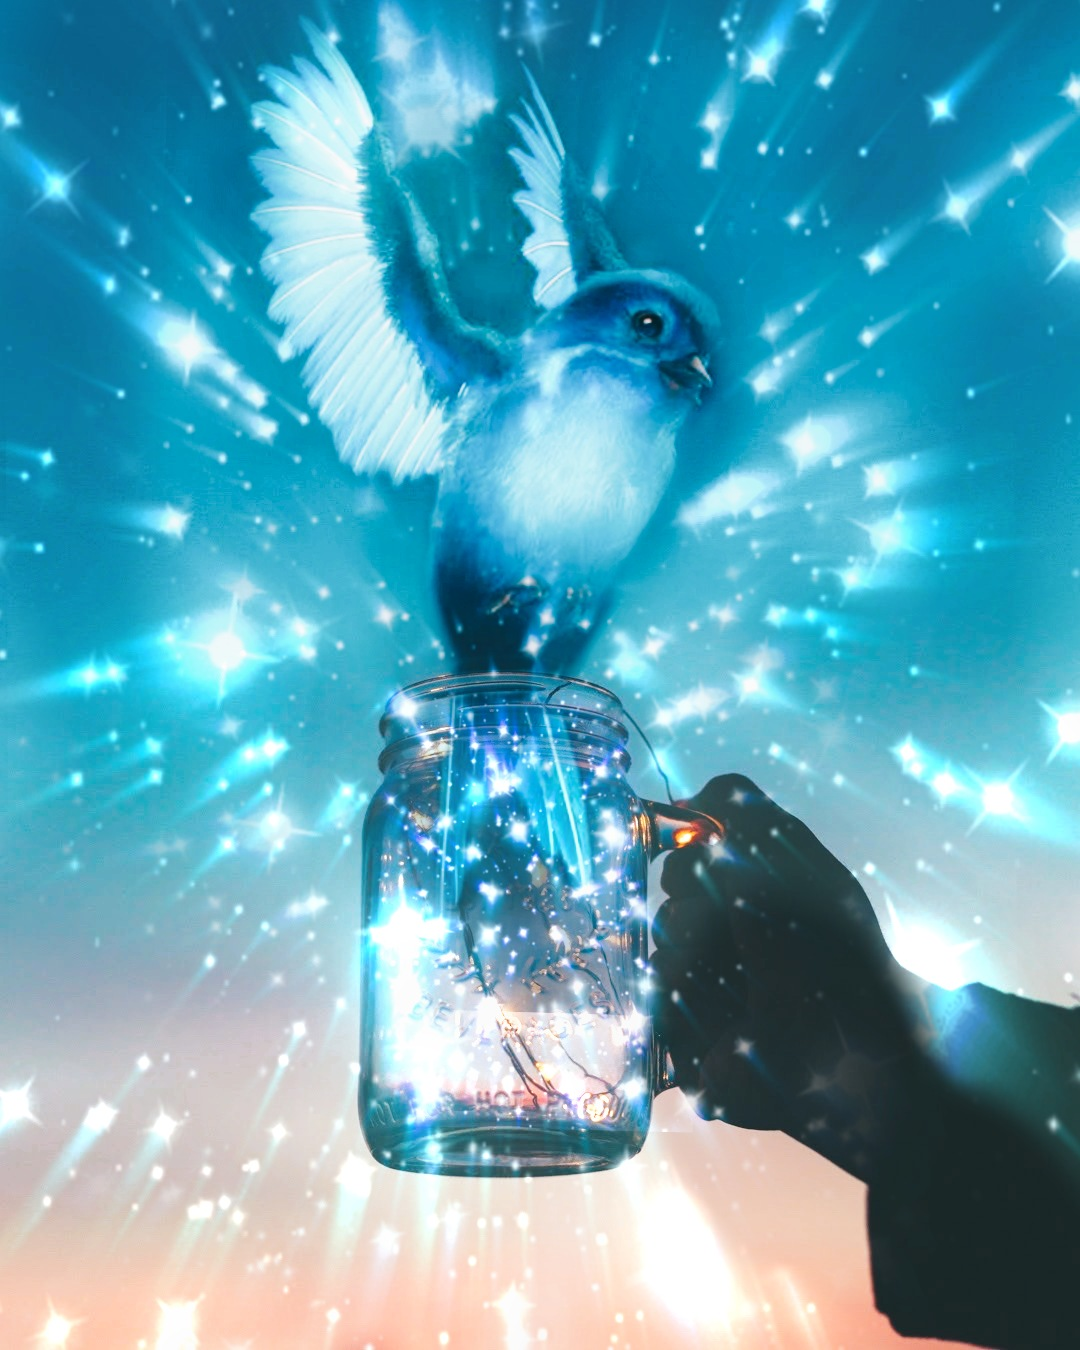 💙TO EVERYTHING I'V EVER LOST: THANK YOU FOR SETTING ME FREE!🕊️#myedit #madewithpicsart #ircmagicfairyjar #magicfairyjar